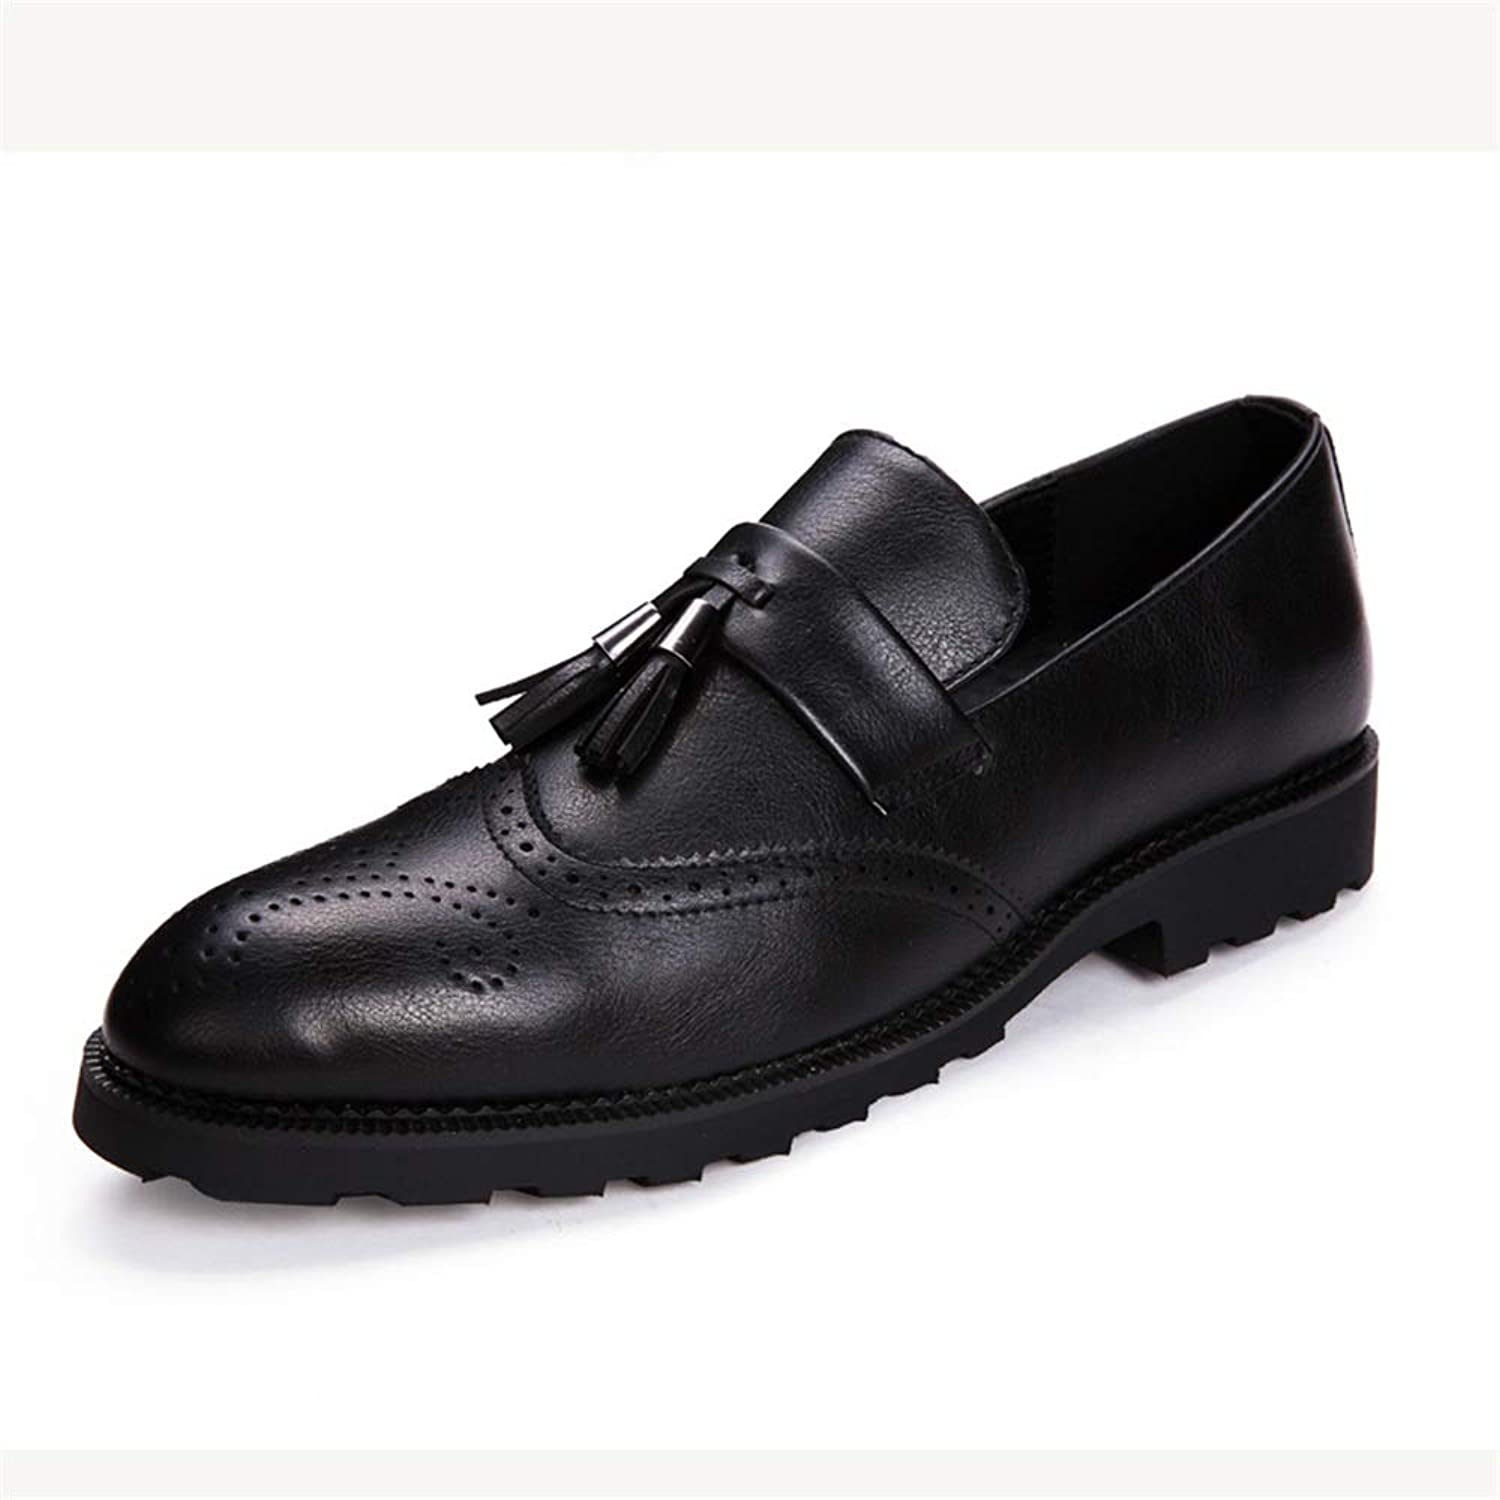 Fashion Men's Fashion Oxford Casual Comfortable Low Top Classic Fringed Carving Brogue shoes Men's Boots (color   Black, Size   7.5 UK)